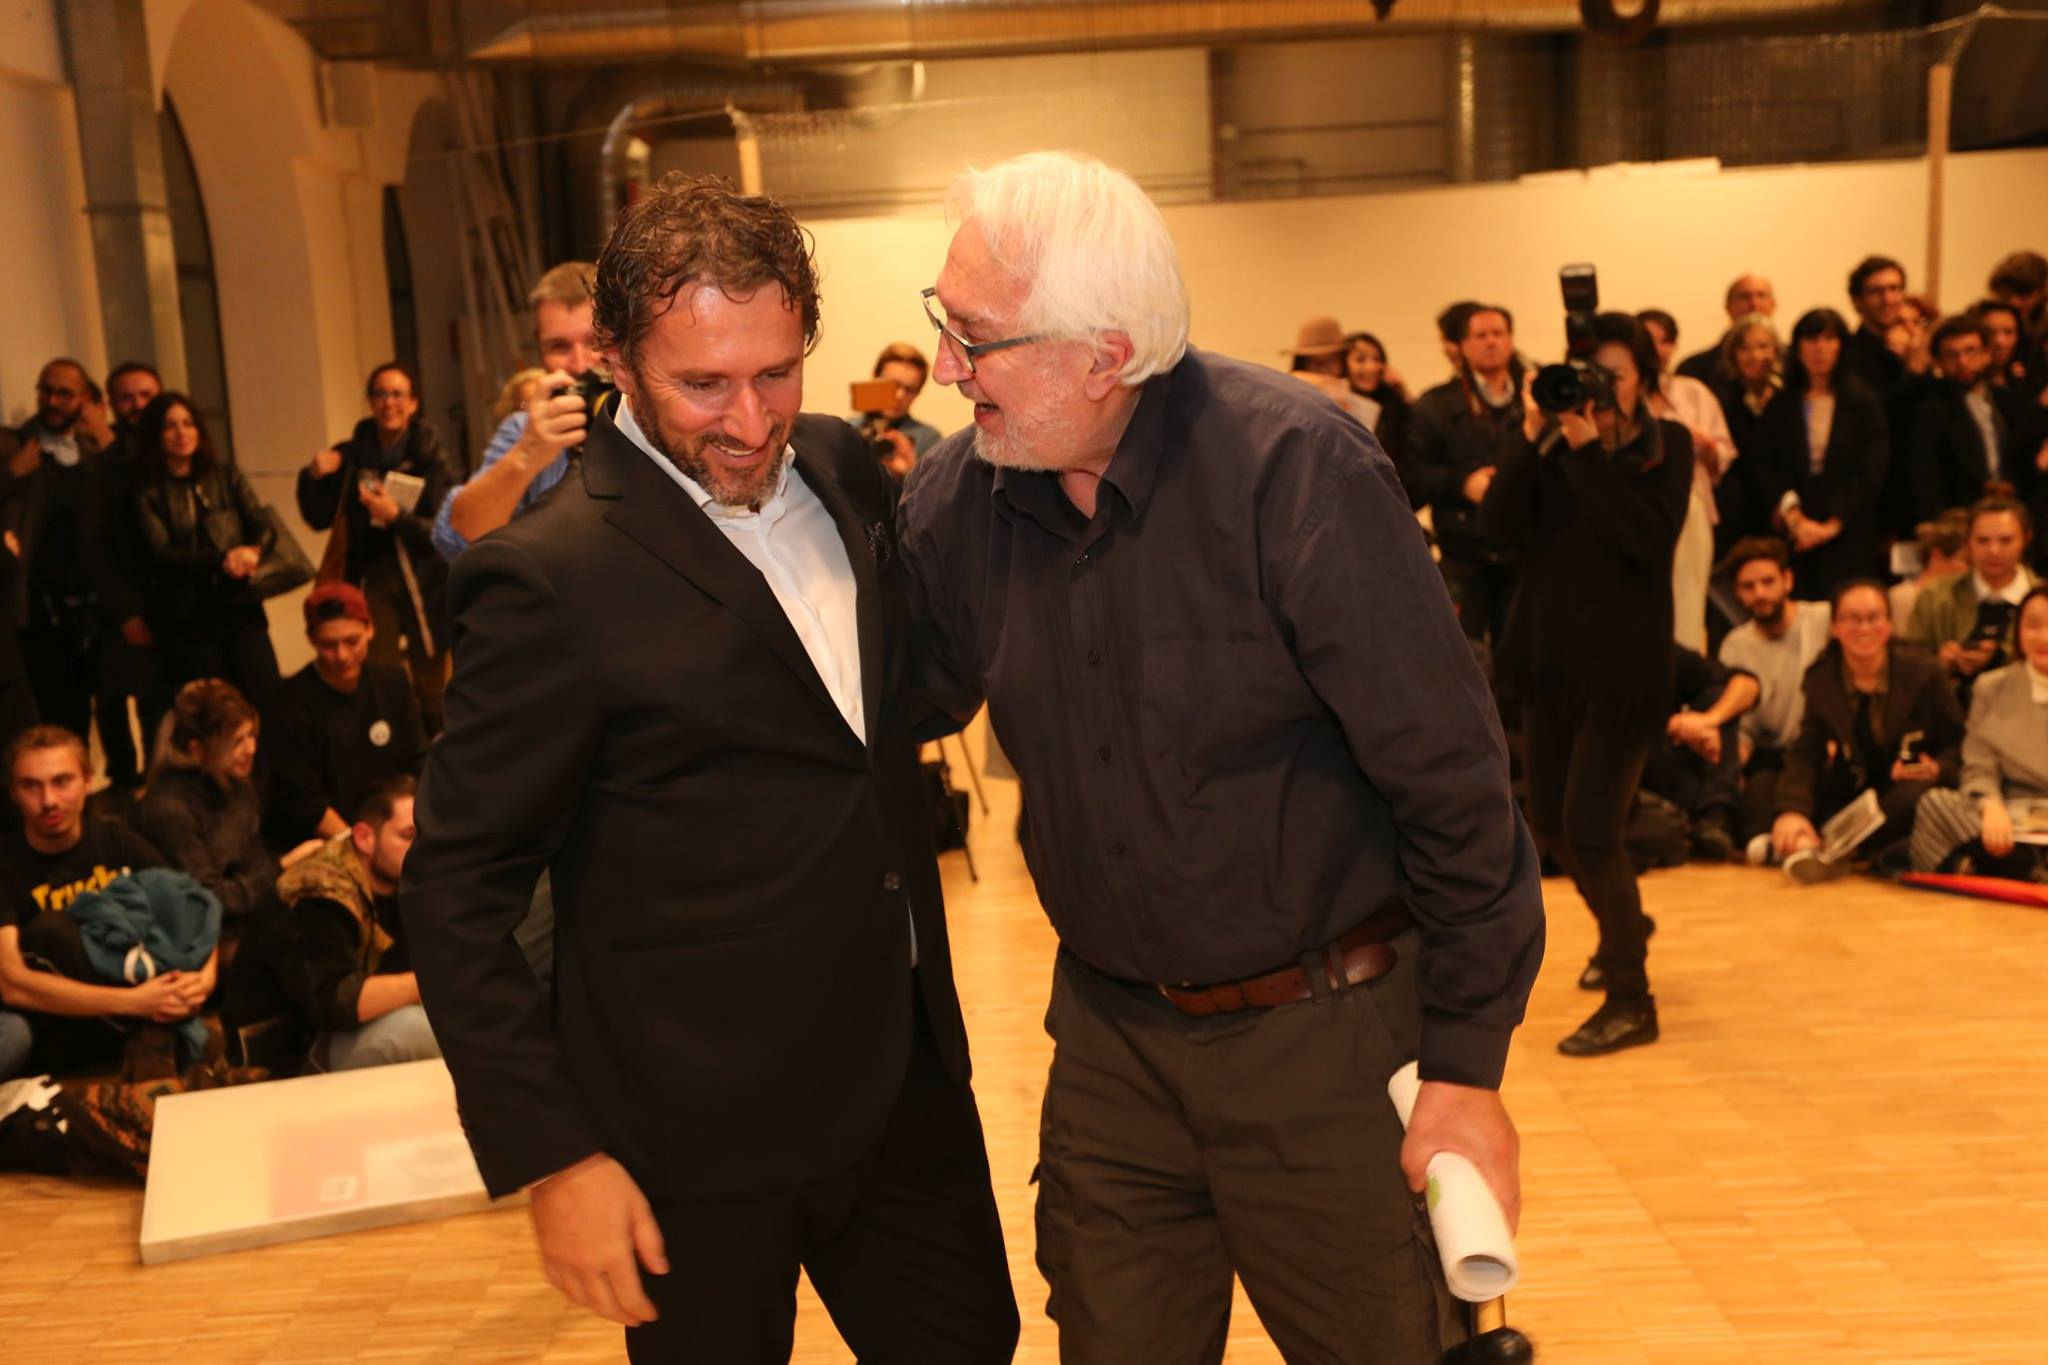 Marinko Sudac and artist Radomir Damnjanović Damnjan following his performance during the 'Non-Aligned Modernity. Eastern-European Art and Archives from the Marinko Sudac Collection' exhibition in Milan, 2016. Courtesy of Marinko Sudac.